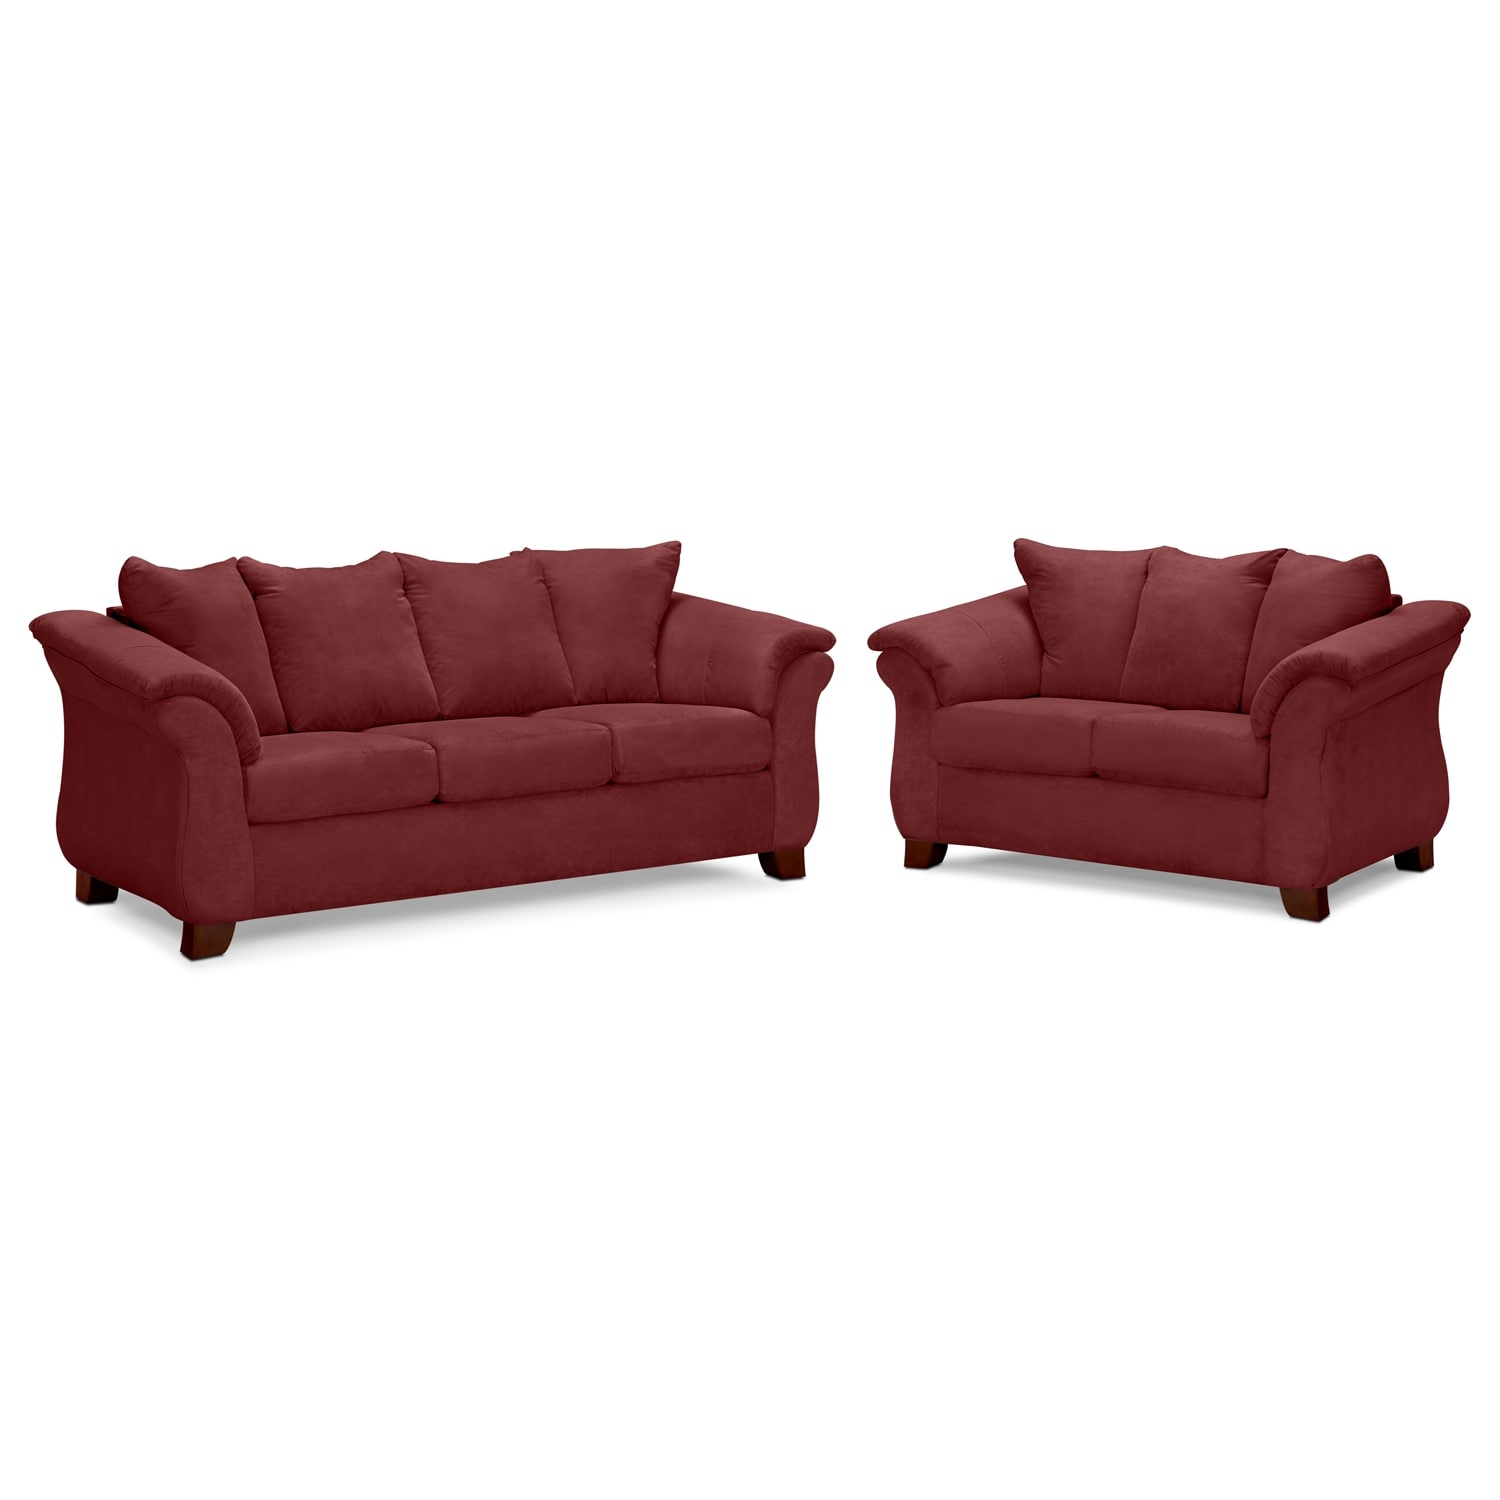 Adrian Sofa and Loveseat Set - Red